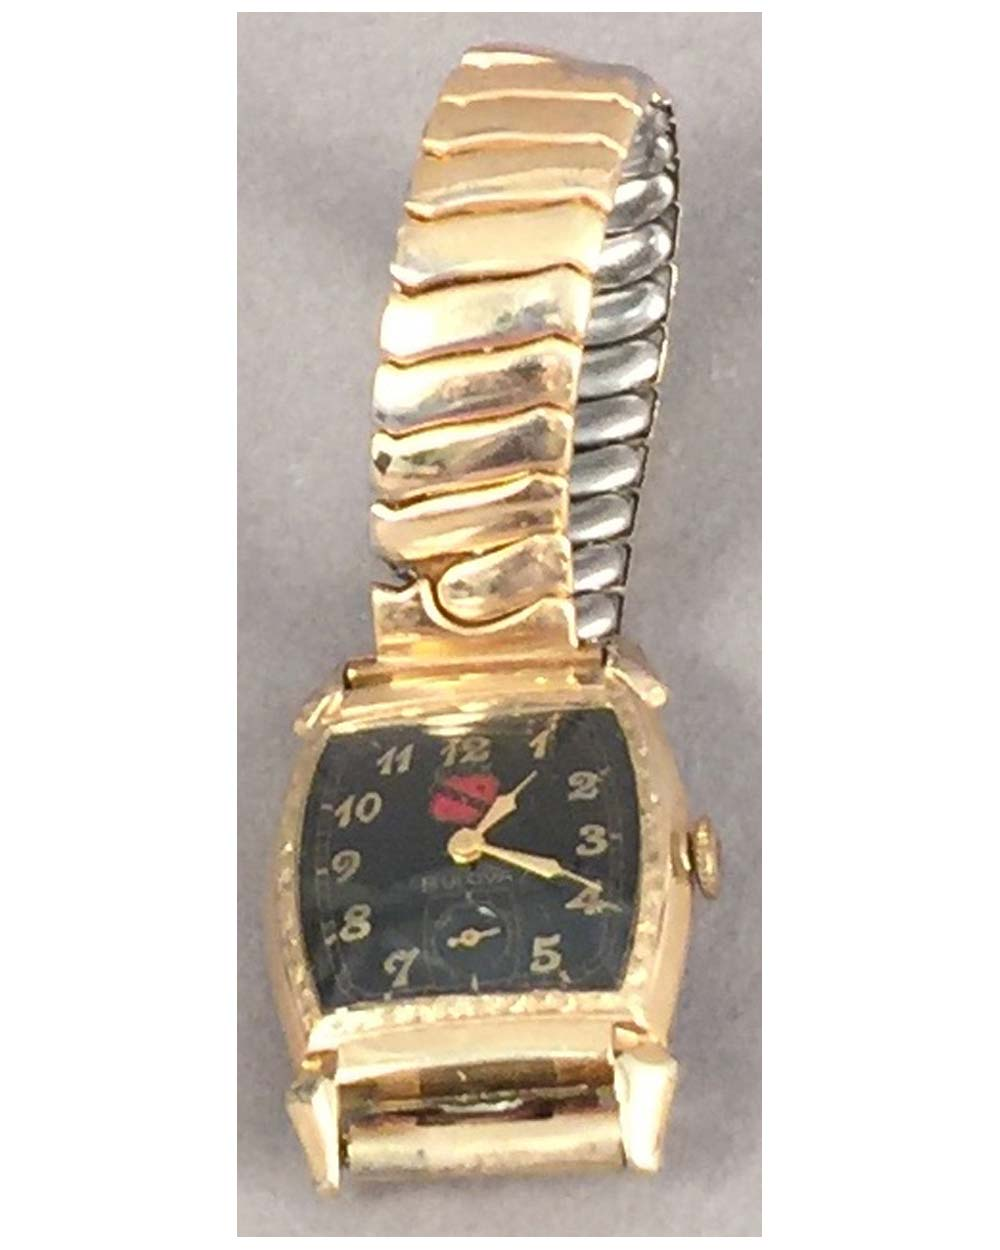 Buick wrist watch By Bulova